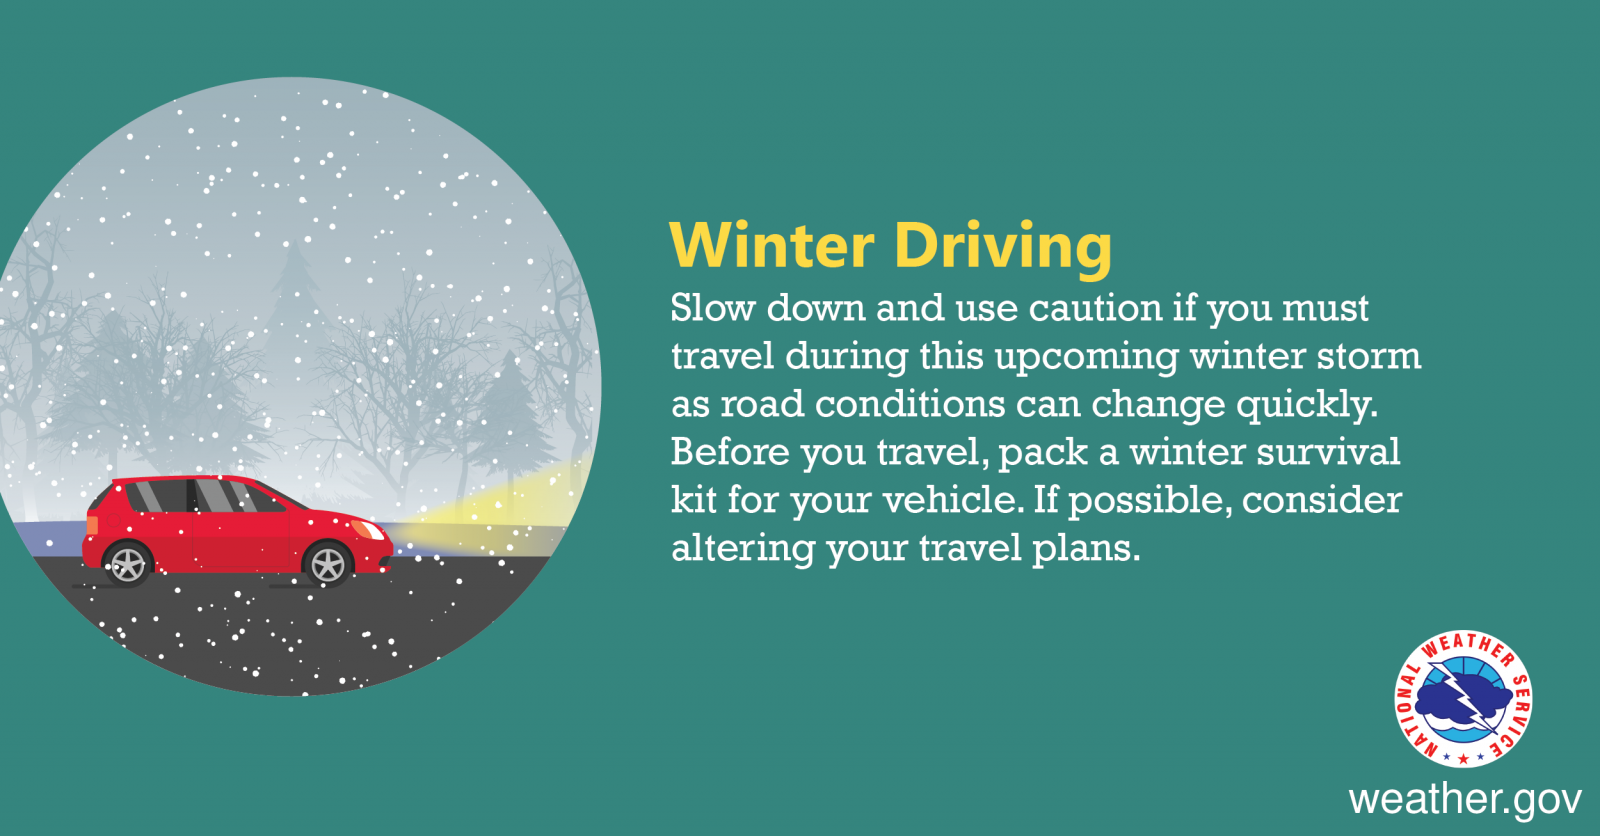 Winter Driving - Slow down and use caution if you must travel during this upcoming winter storm as road conditions can change quickly. Before you travel, pack a winter survival kit for your vehicle. If possible, consider altering your travel plans.